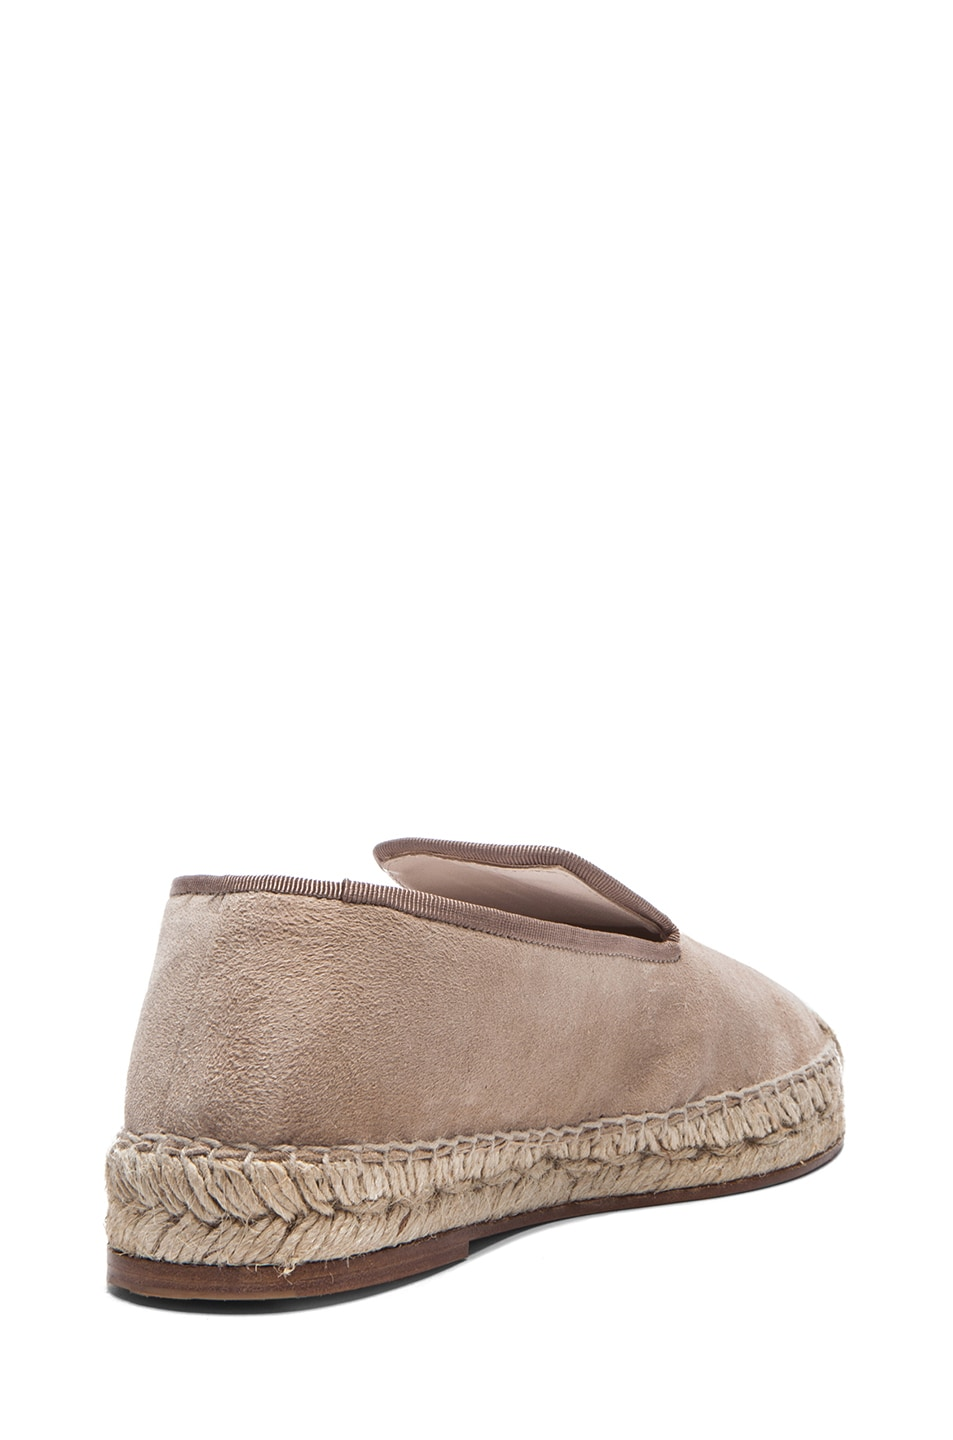 Image 3 of elysewalker los angeles Suede Espadrilles in Dune